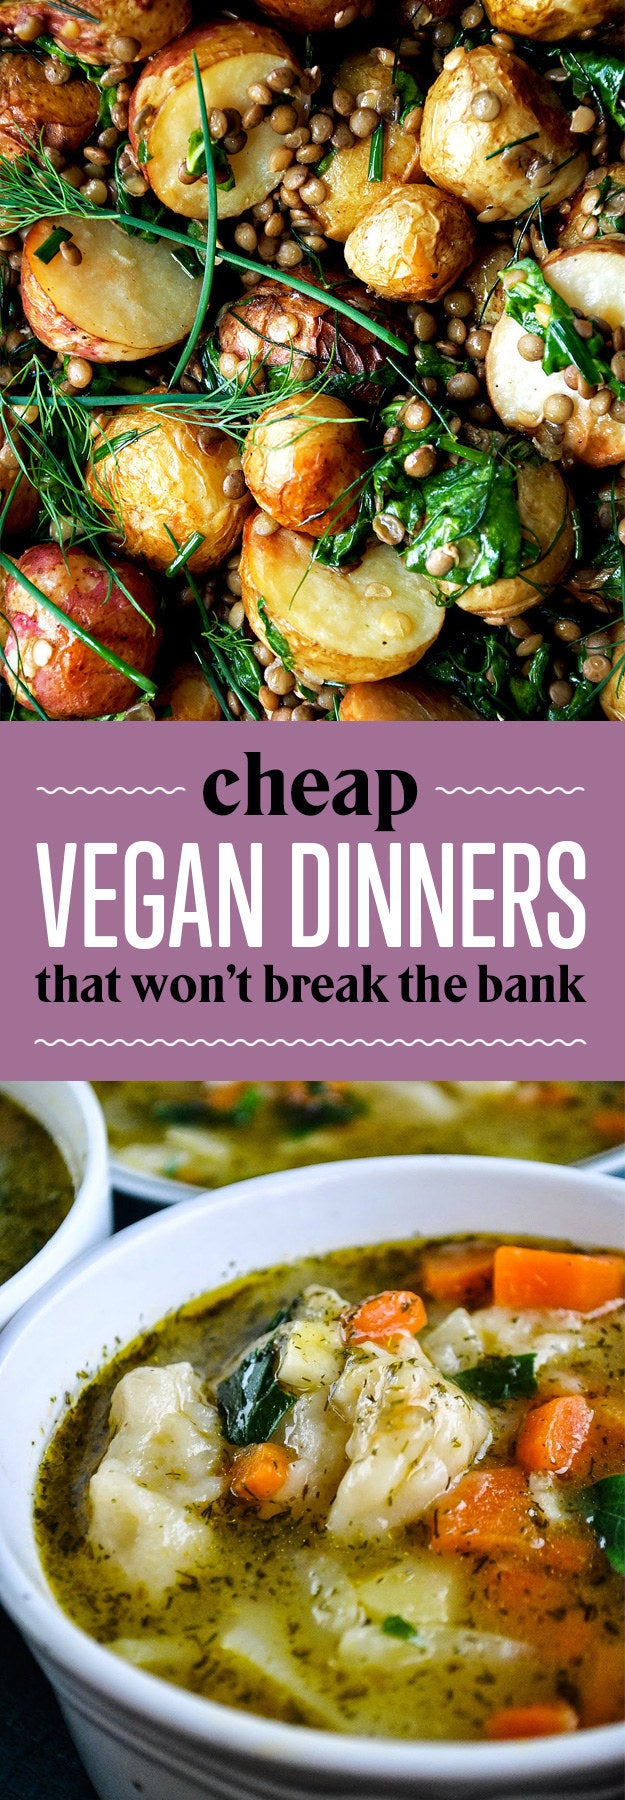 26 Budget Friendly Dinners With No Meat Or Dairy